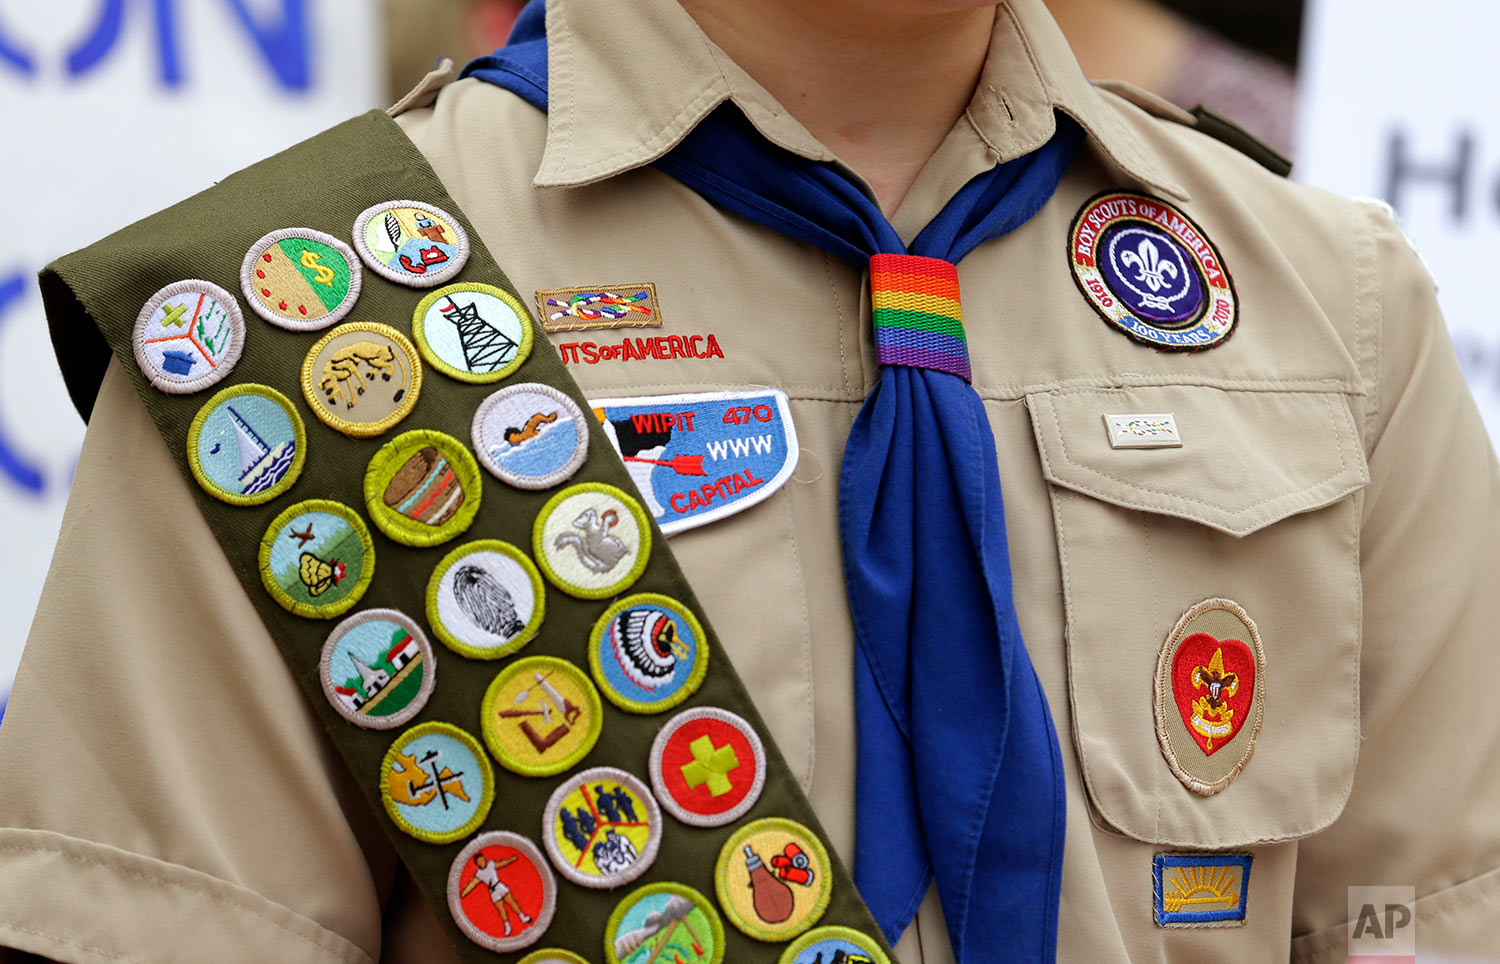 This Wednesday, May 21, 2014 file photo shows merit badges and a rainbow-colored neckerchief slider on the Boy Scout uniform of Pascal Tessier, 17, a gay Eagle Scout from Kensington, Md., as he speaks in front of a group of scouts and scout leaders, outside the headquarters of Amazon in Seattle. The group delivered a petition to Amazon that was started as an online effort by Tessier, urging Amazon to stop donating money to the Boy Scouts due to the organization's policy of excluding openly gay adults from leadership positions, despite recently accepting gay youth as scouts. (AP Photo/Ted S. Warren)